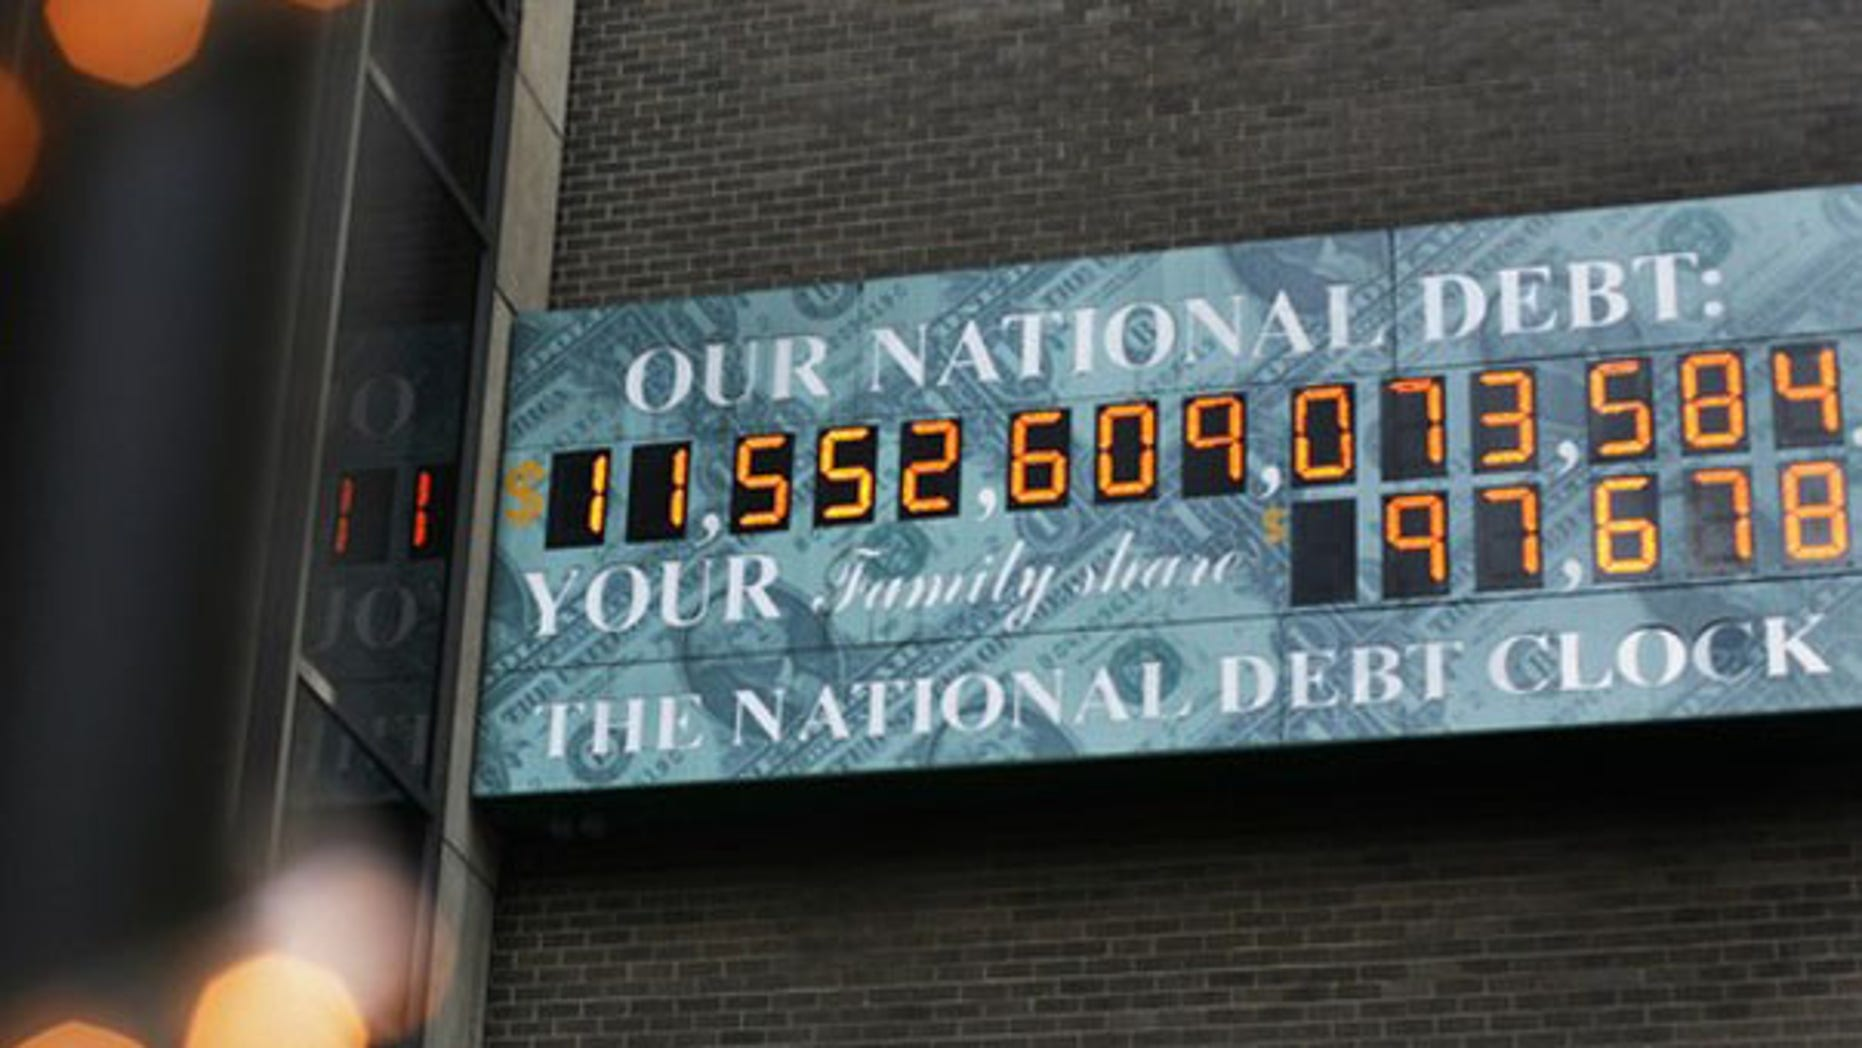 The National Debt Clock, which shows the U.S. national debt, is seen in New York City Aug. 24. That number has since surpassed $12 trillion. (Reuters Photo)